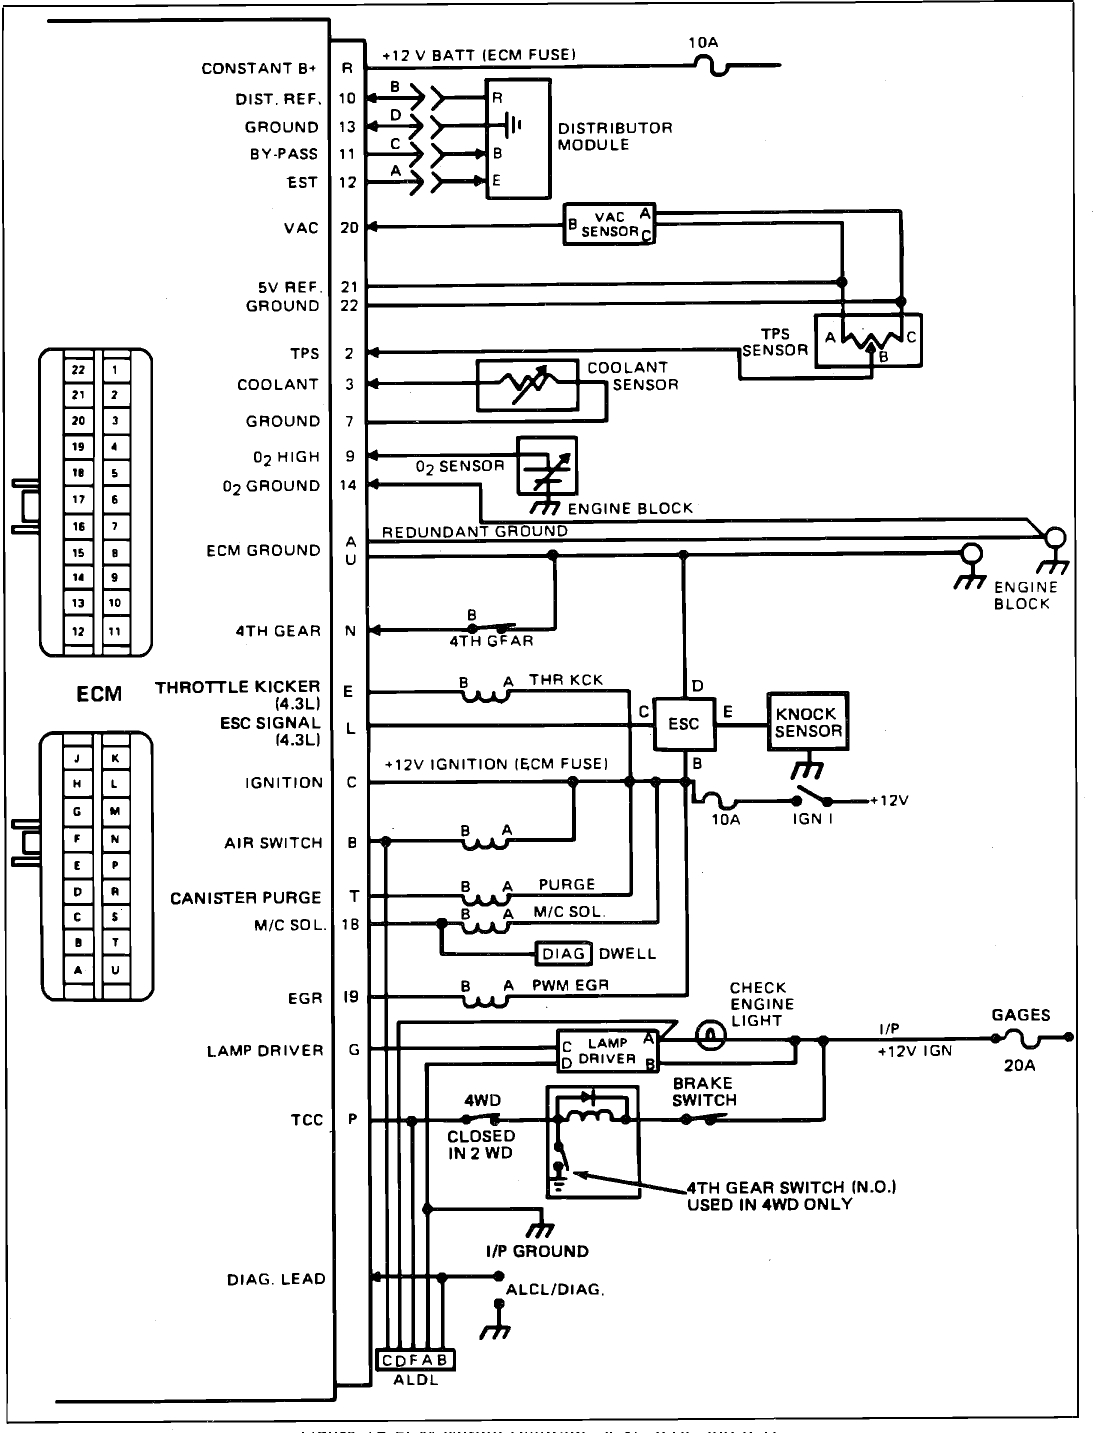 wiring diagram for 1995 chevy lumina van trusted wiring diagram rh dafpods  co 1991 Camaro Wiring Diagram 1997 Chevy Lumina Engine Diagram